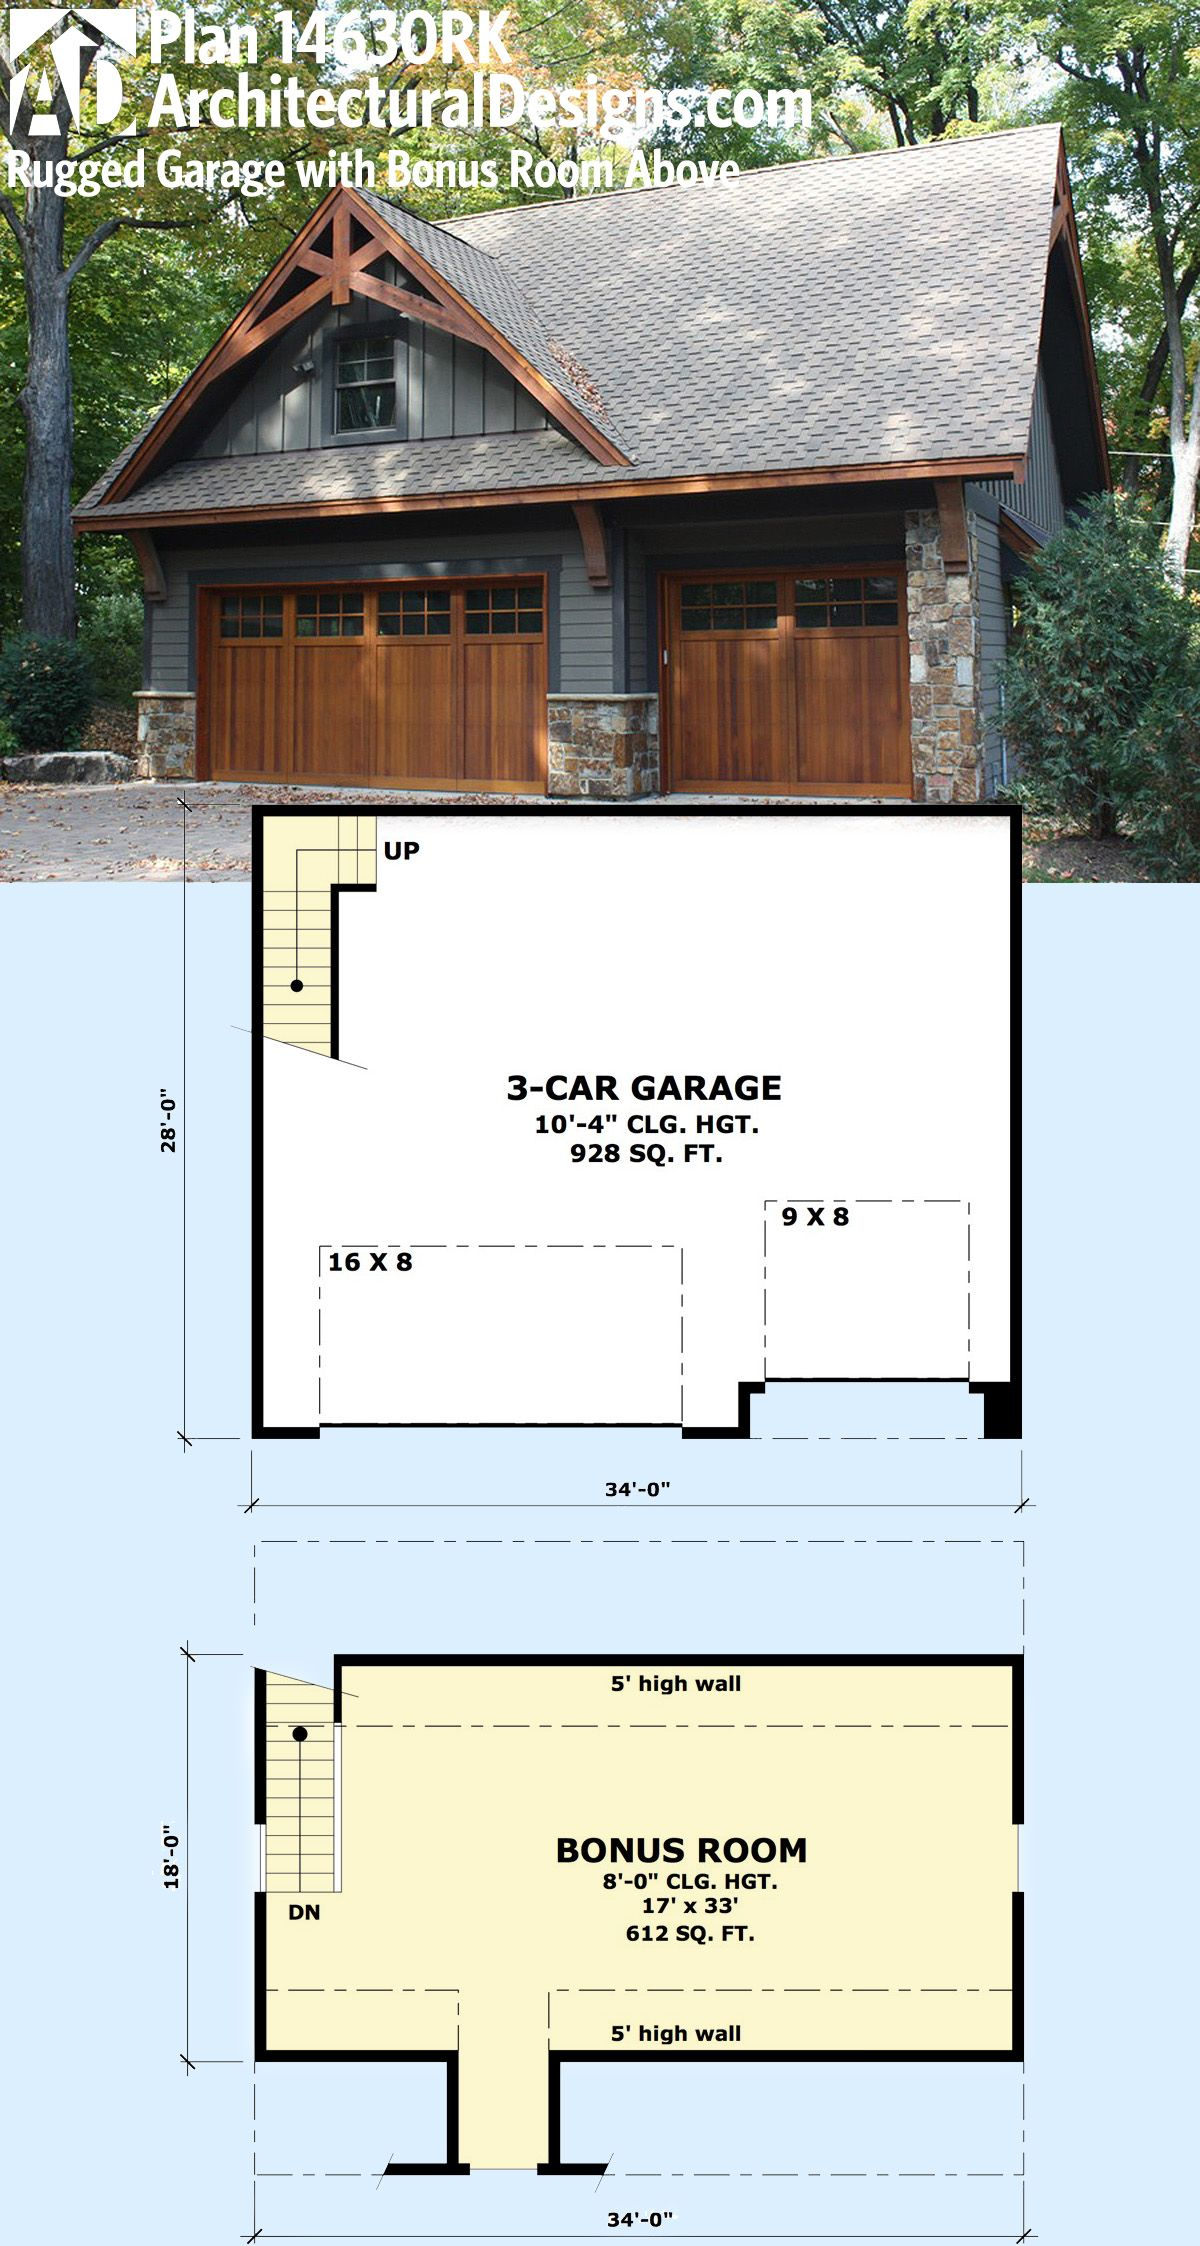 Architectural Designs Rugged Garage Plan 14630rk Gives You